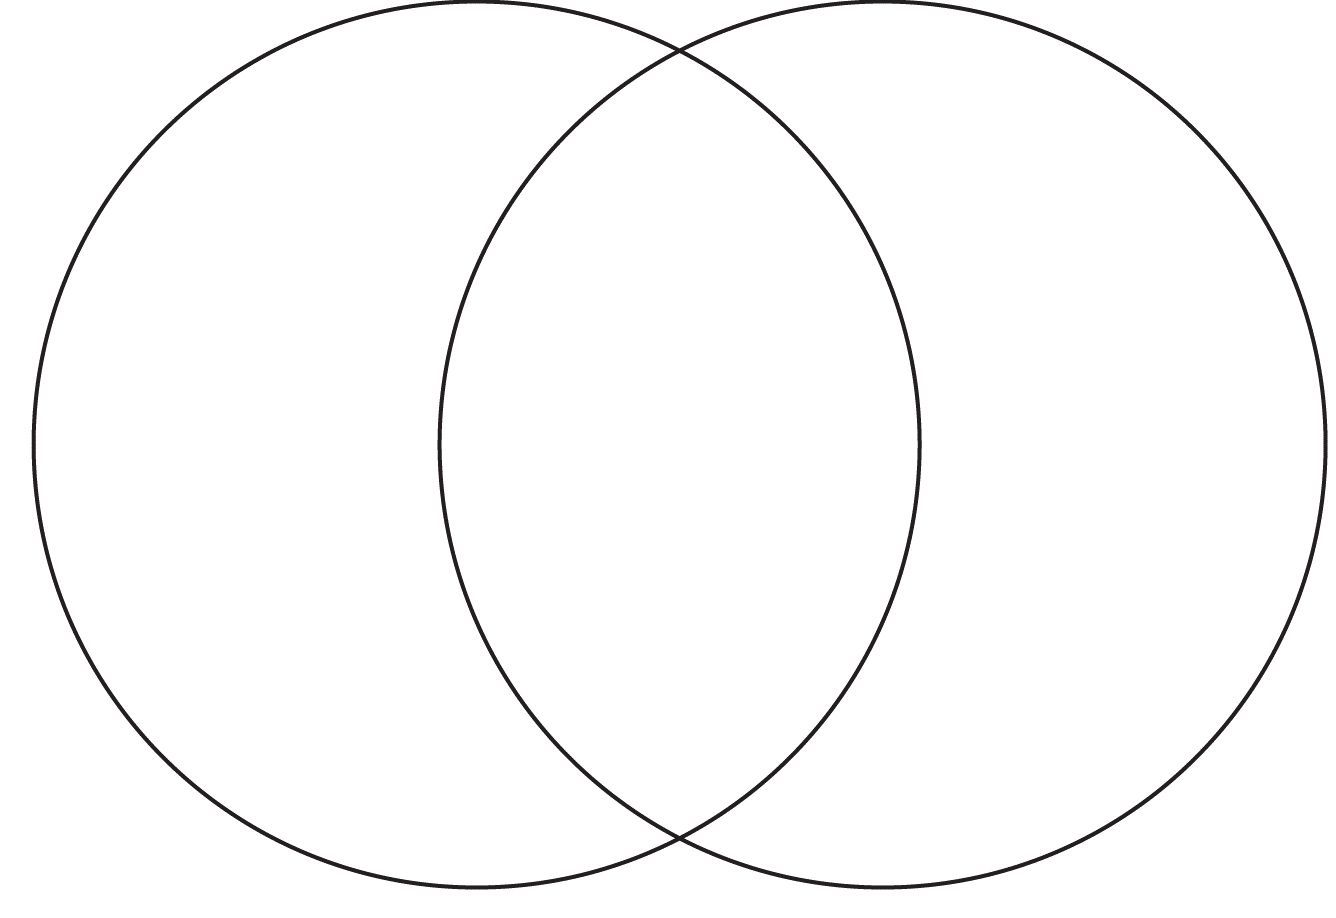 venn diagram template [ 1336 x 918 Pixel ]